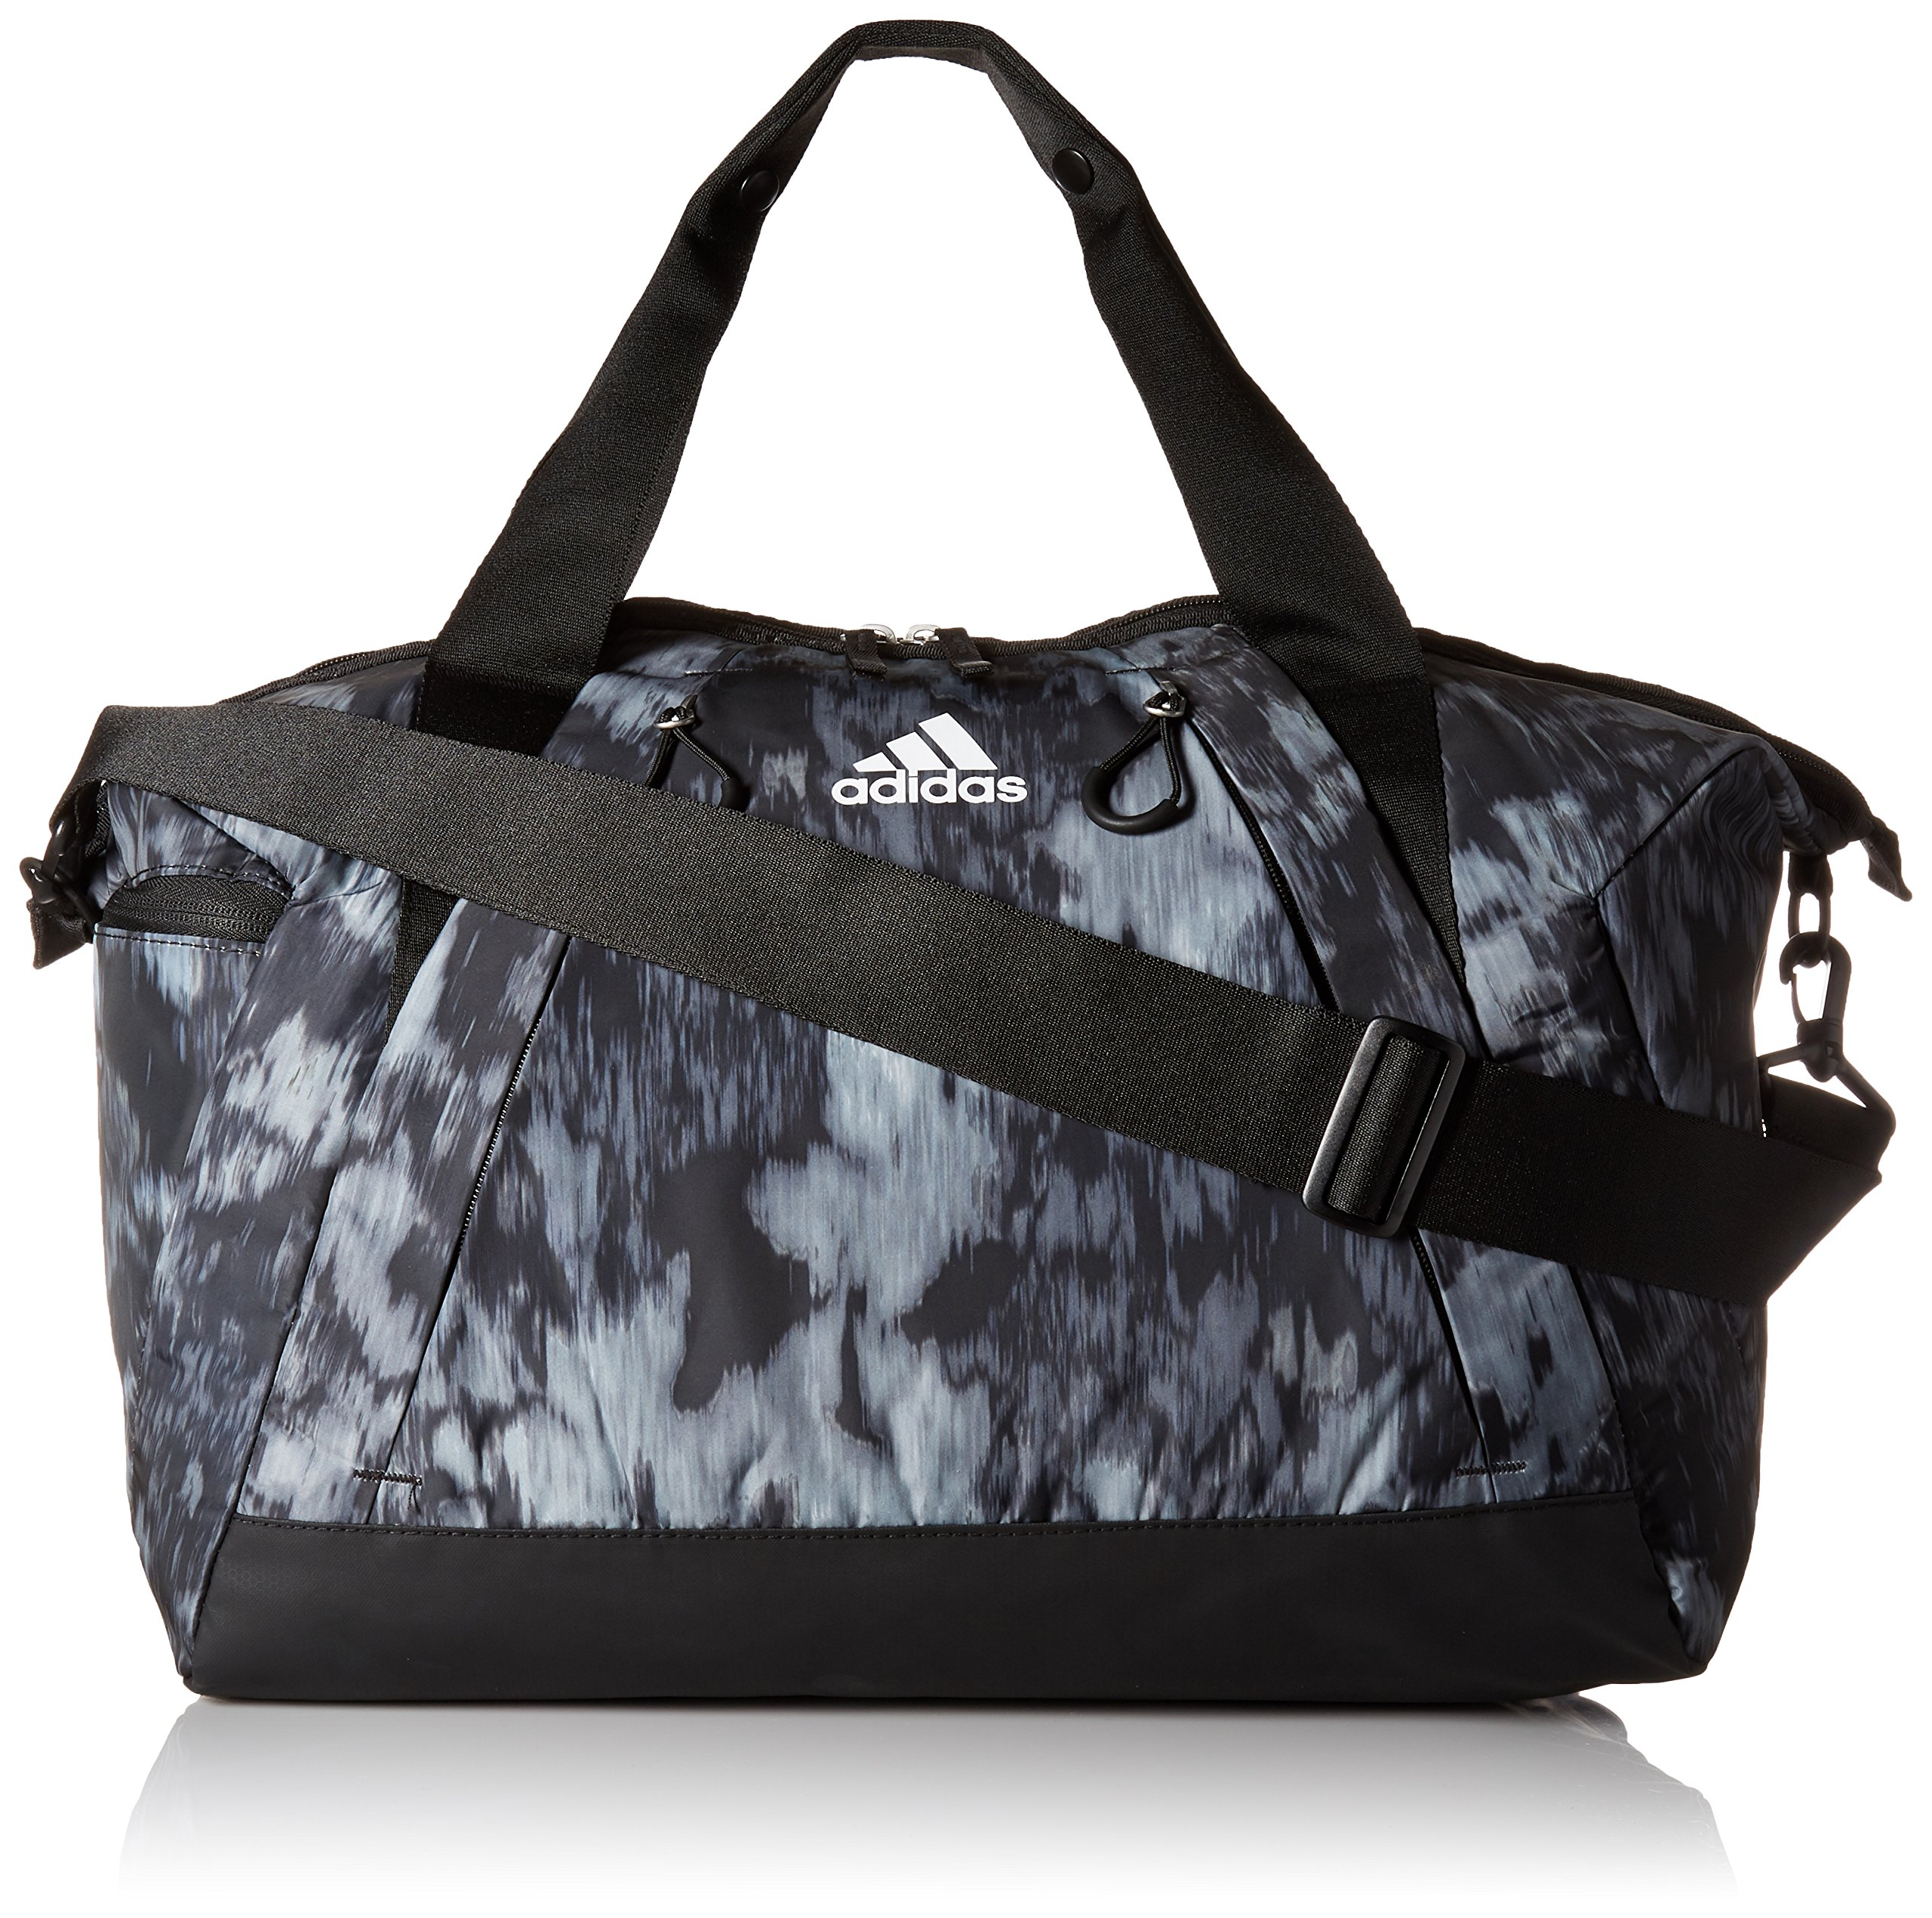 4f9ca12b6b0f Best Rated in Gym Bags   Helpful Customer Reviews - Amazon.com